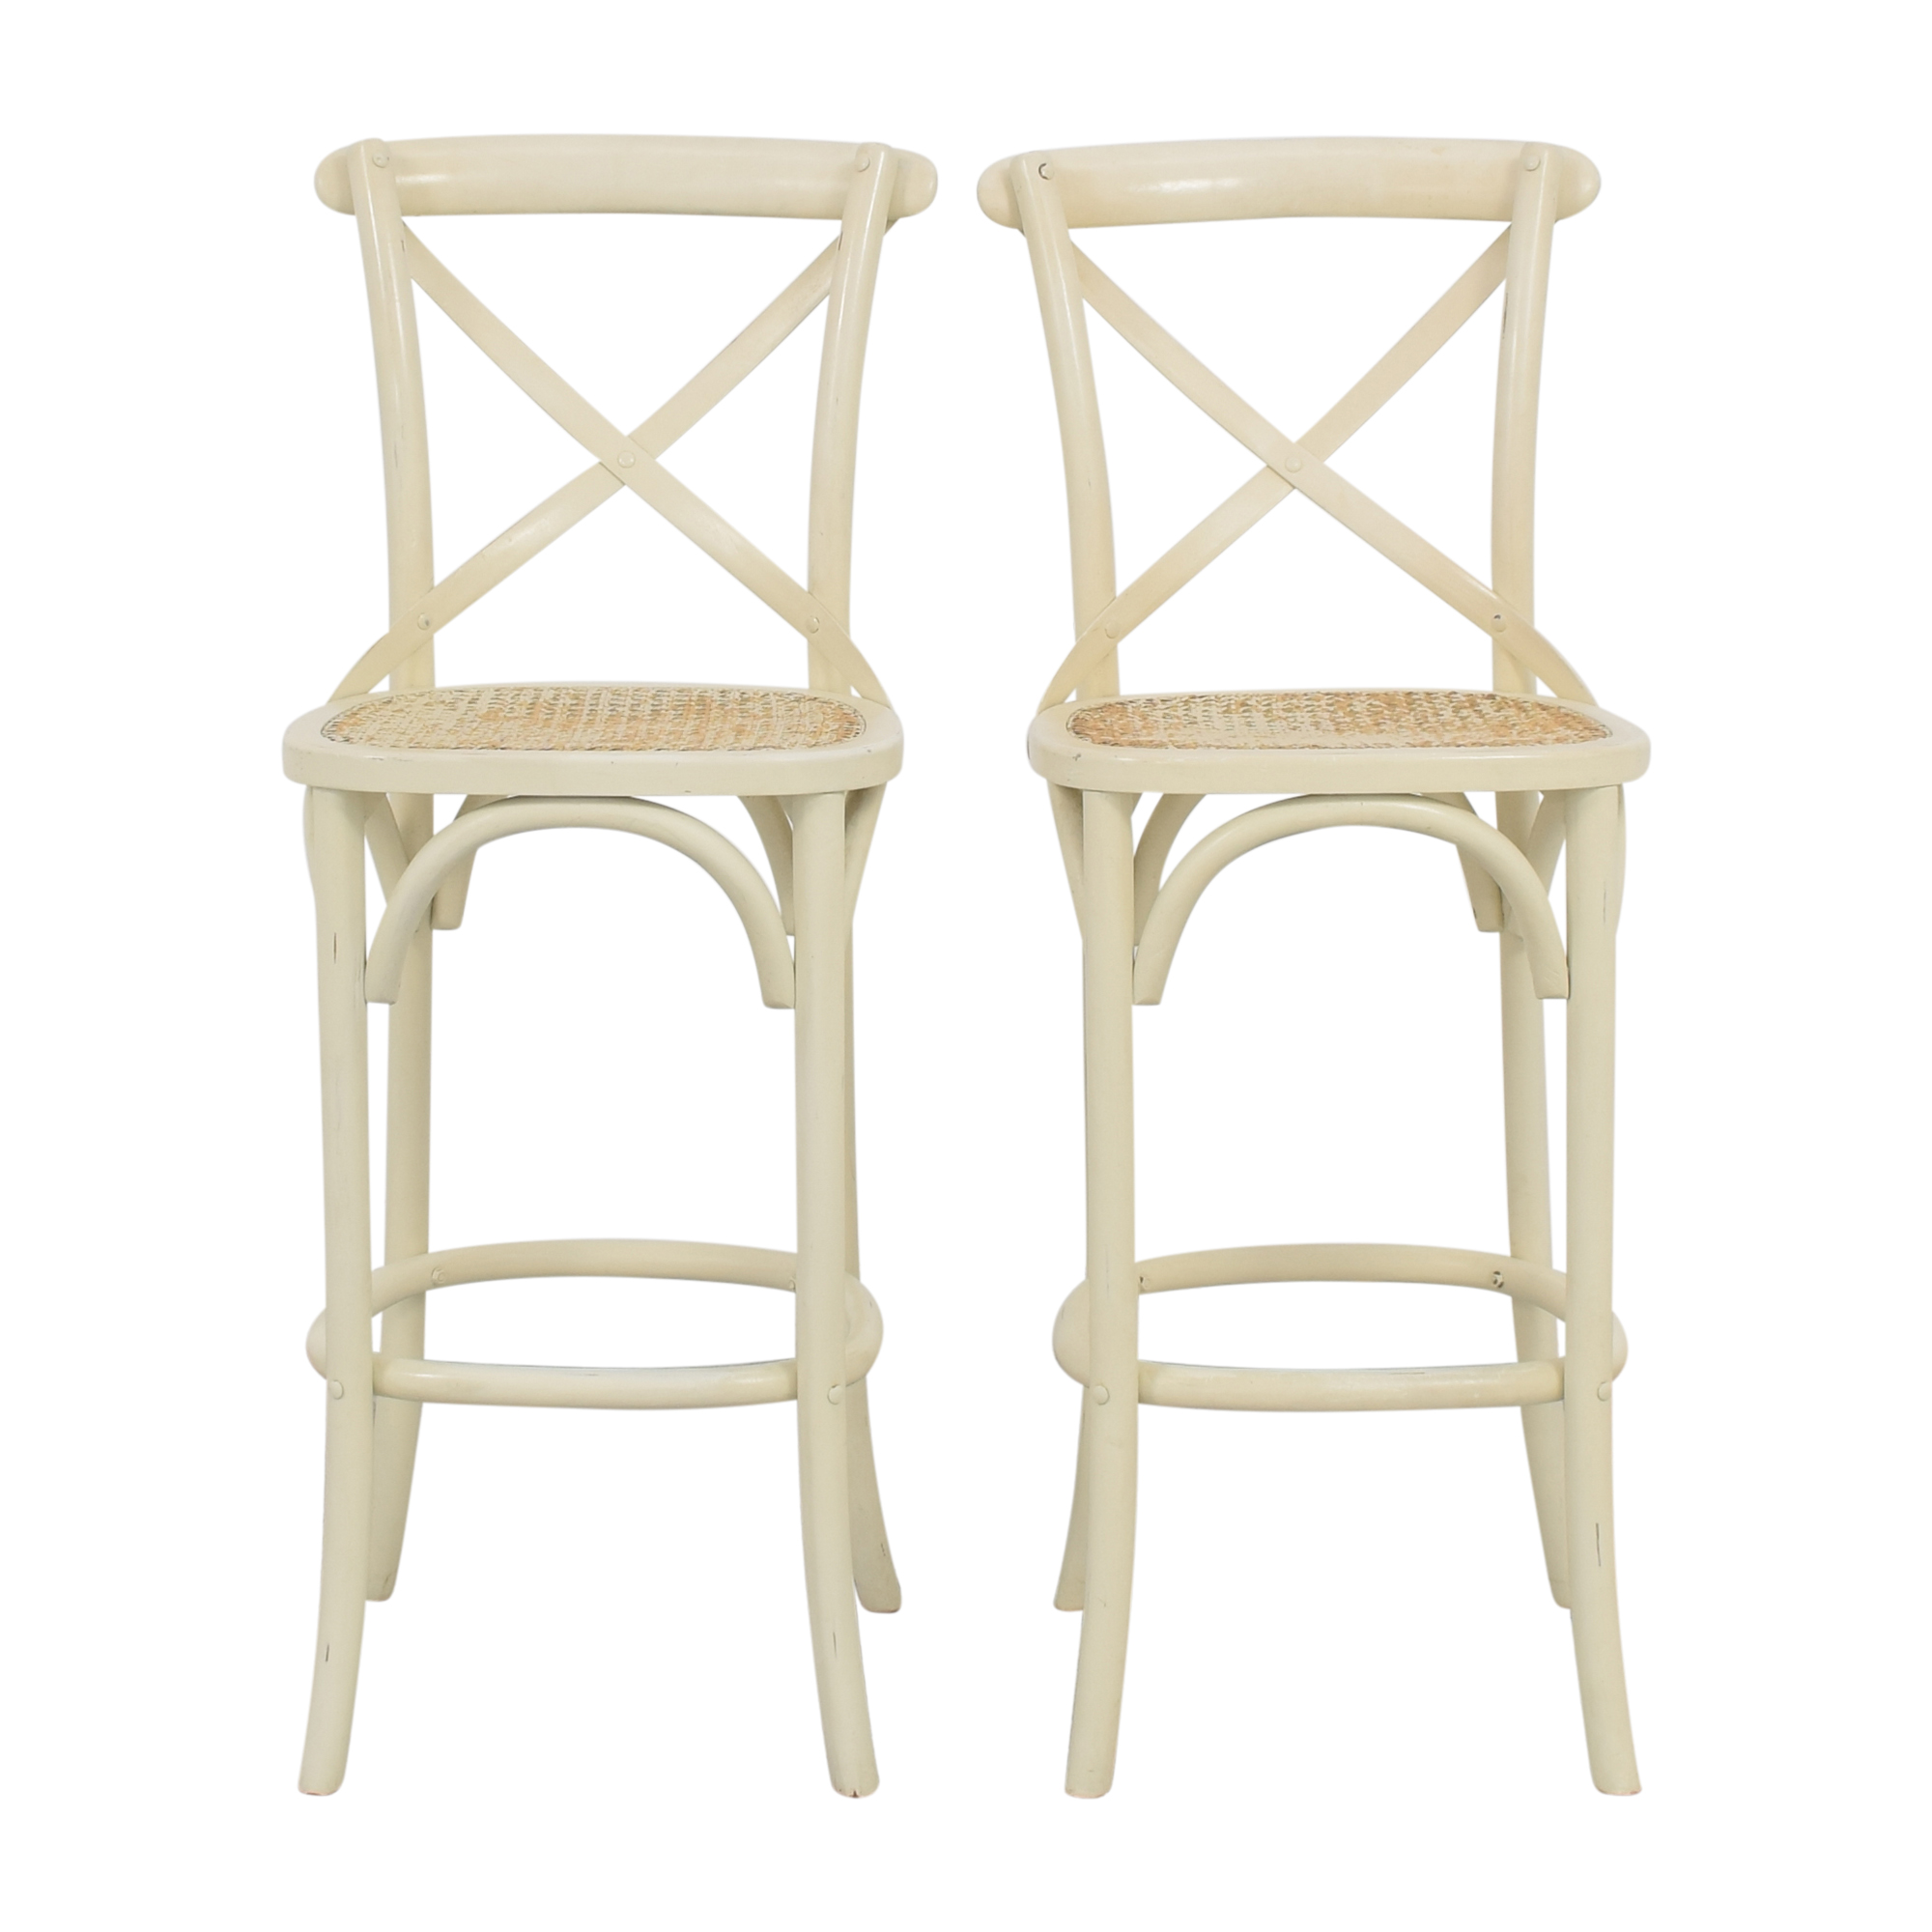 Restoration Hardware Restoration Hardware Hightop Chairs used